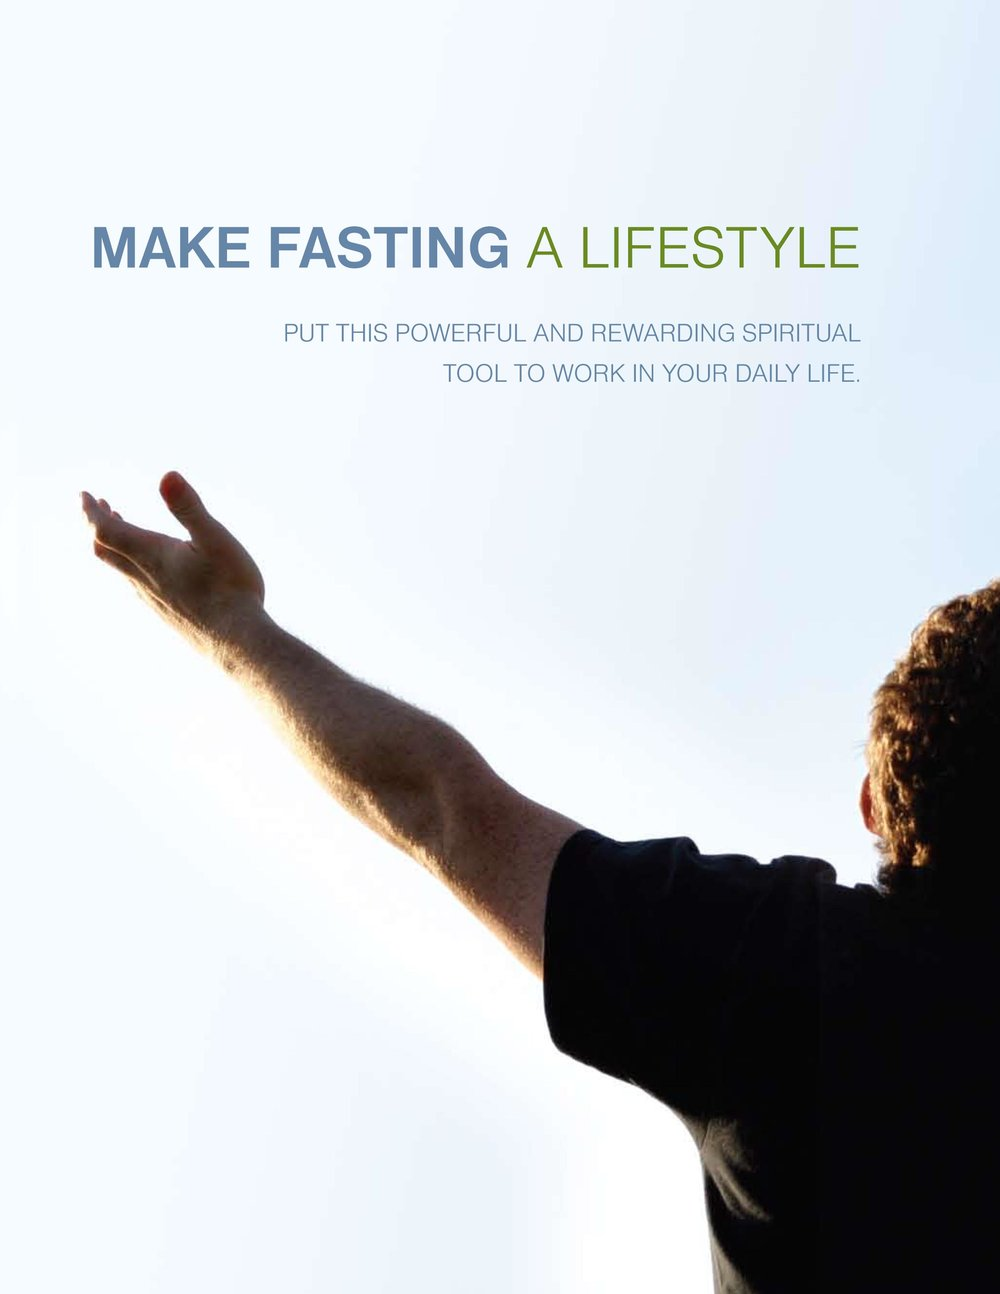 Make-Fasting-A-Lifestyle-page-001.jpg